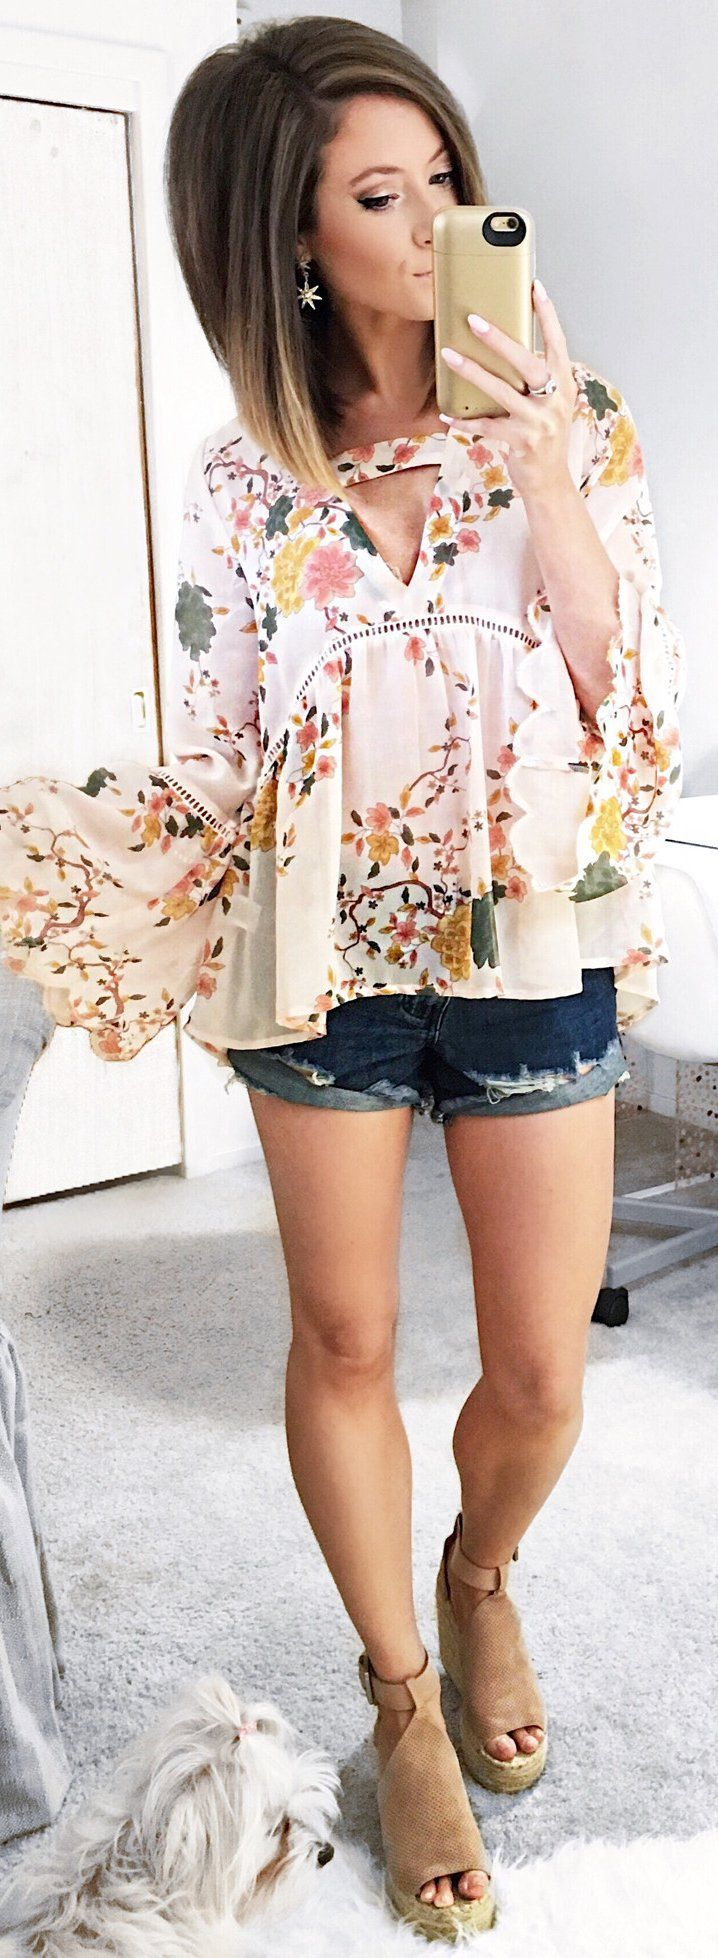 17 Best ideas about Casual Spring Outfits on Pinterest | Spring outfits Spring clothes and ...